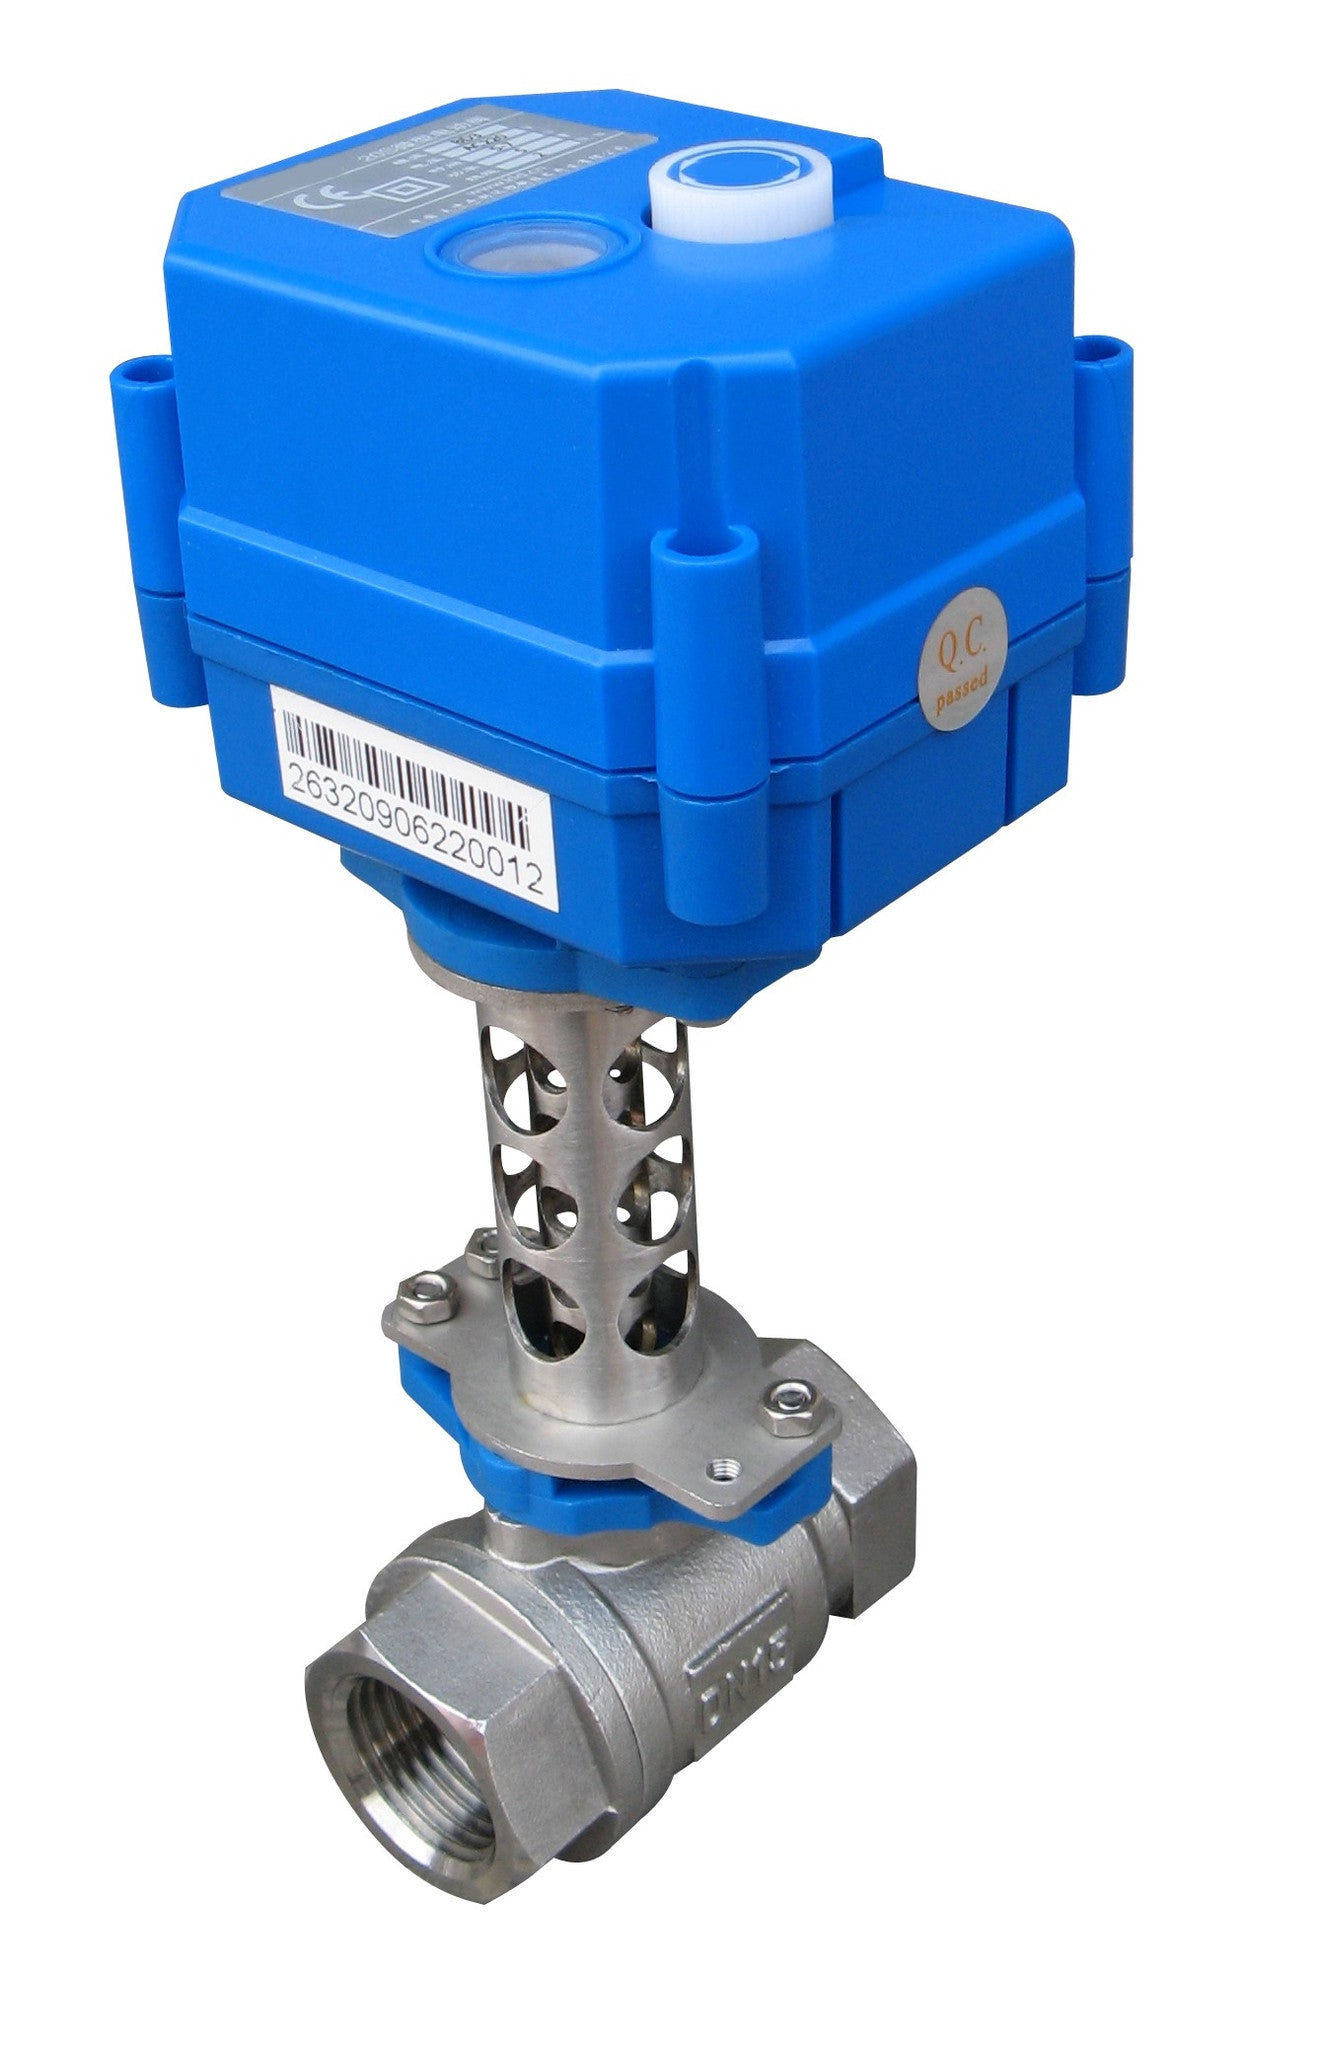 Electric ball valve YS20SHT High Temperature, 3 wires actuator 95-250 VAC  #yamavalve